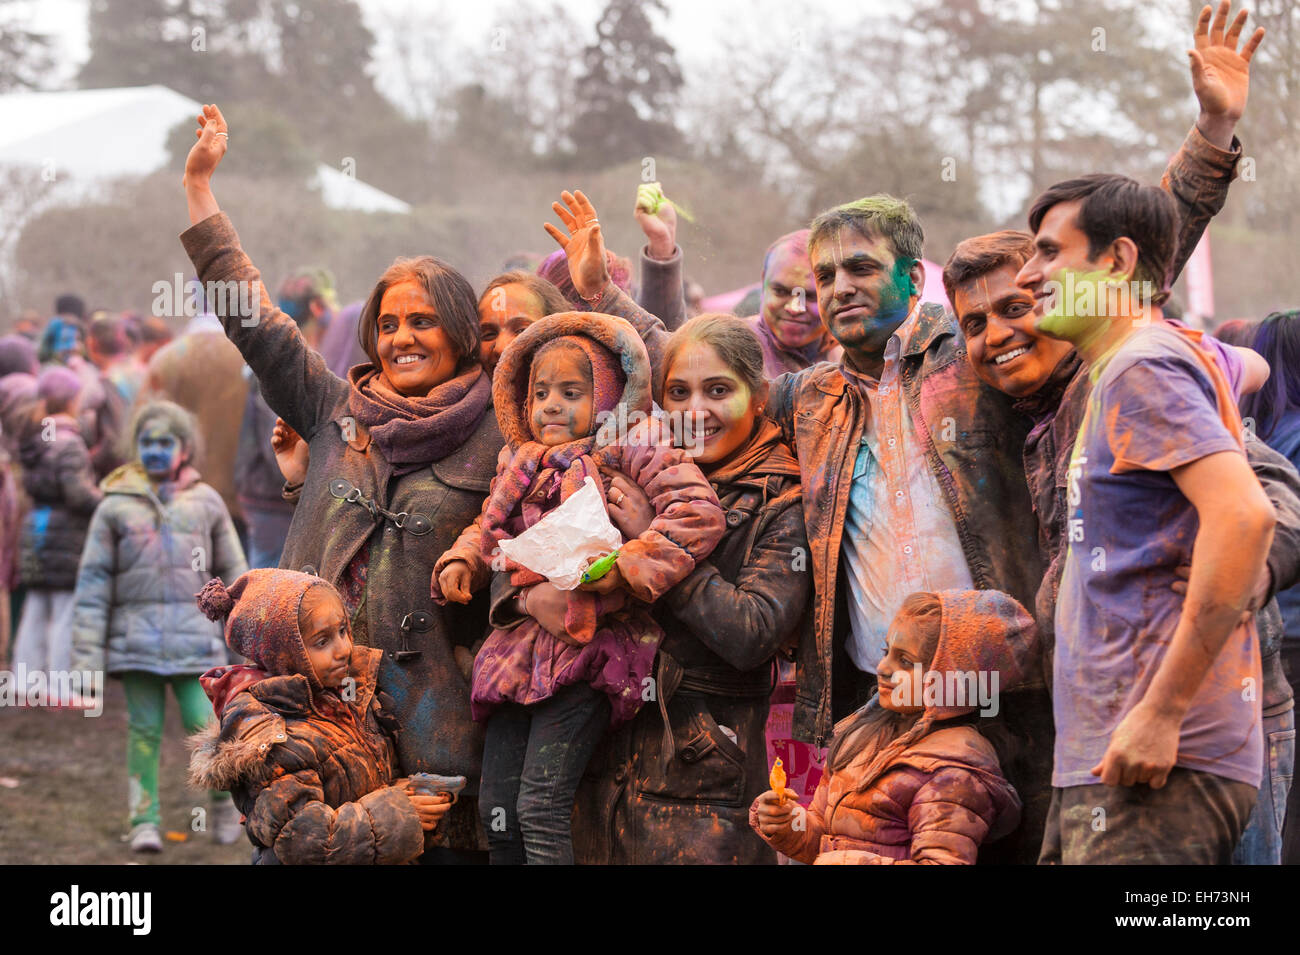 Watford, London, UK, 8 March 2015.   People celebrate the Festival of Holi, or Festival of Colours,  by throwing - Stock Image